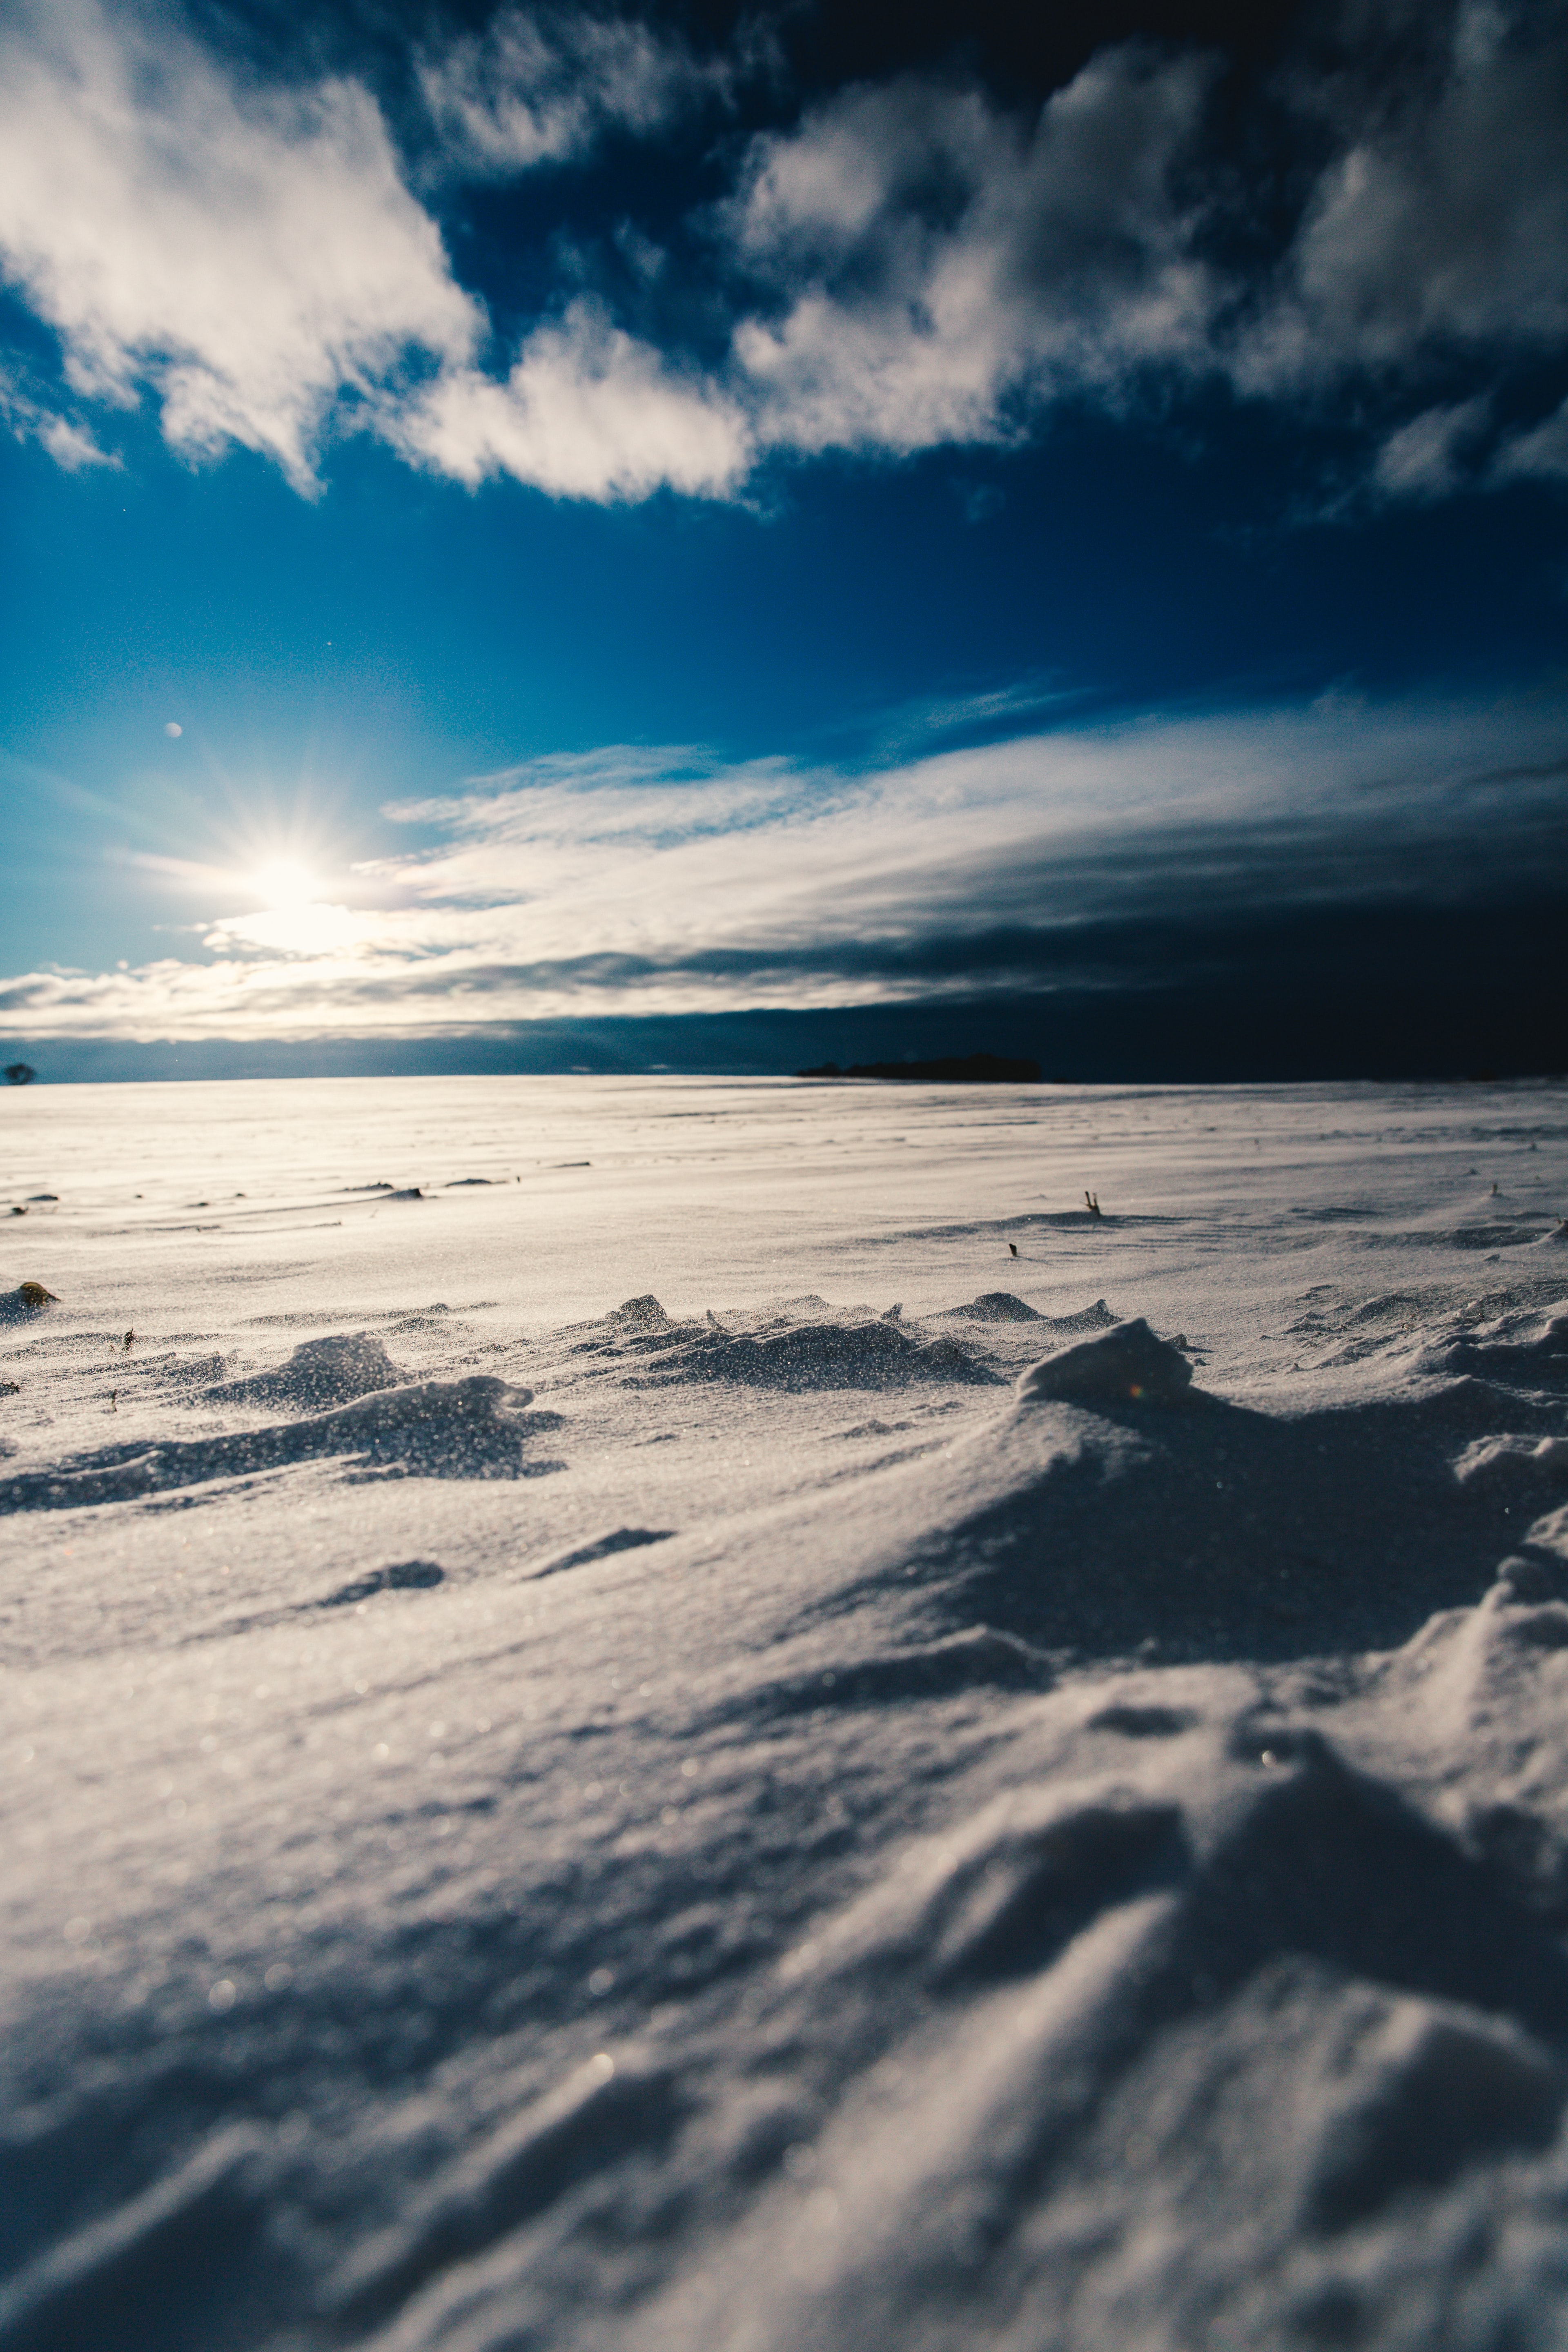 A blue sky in white clouds with white snow fall on the ground